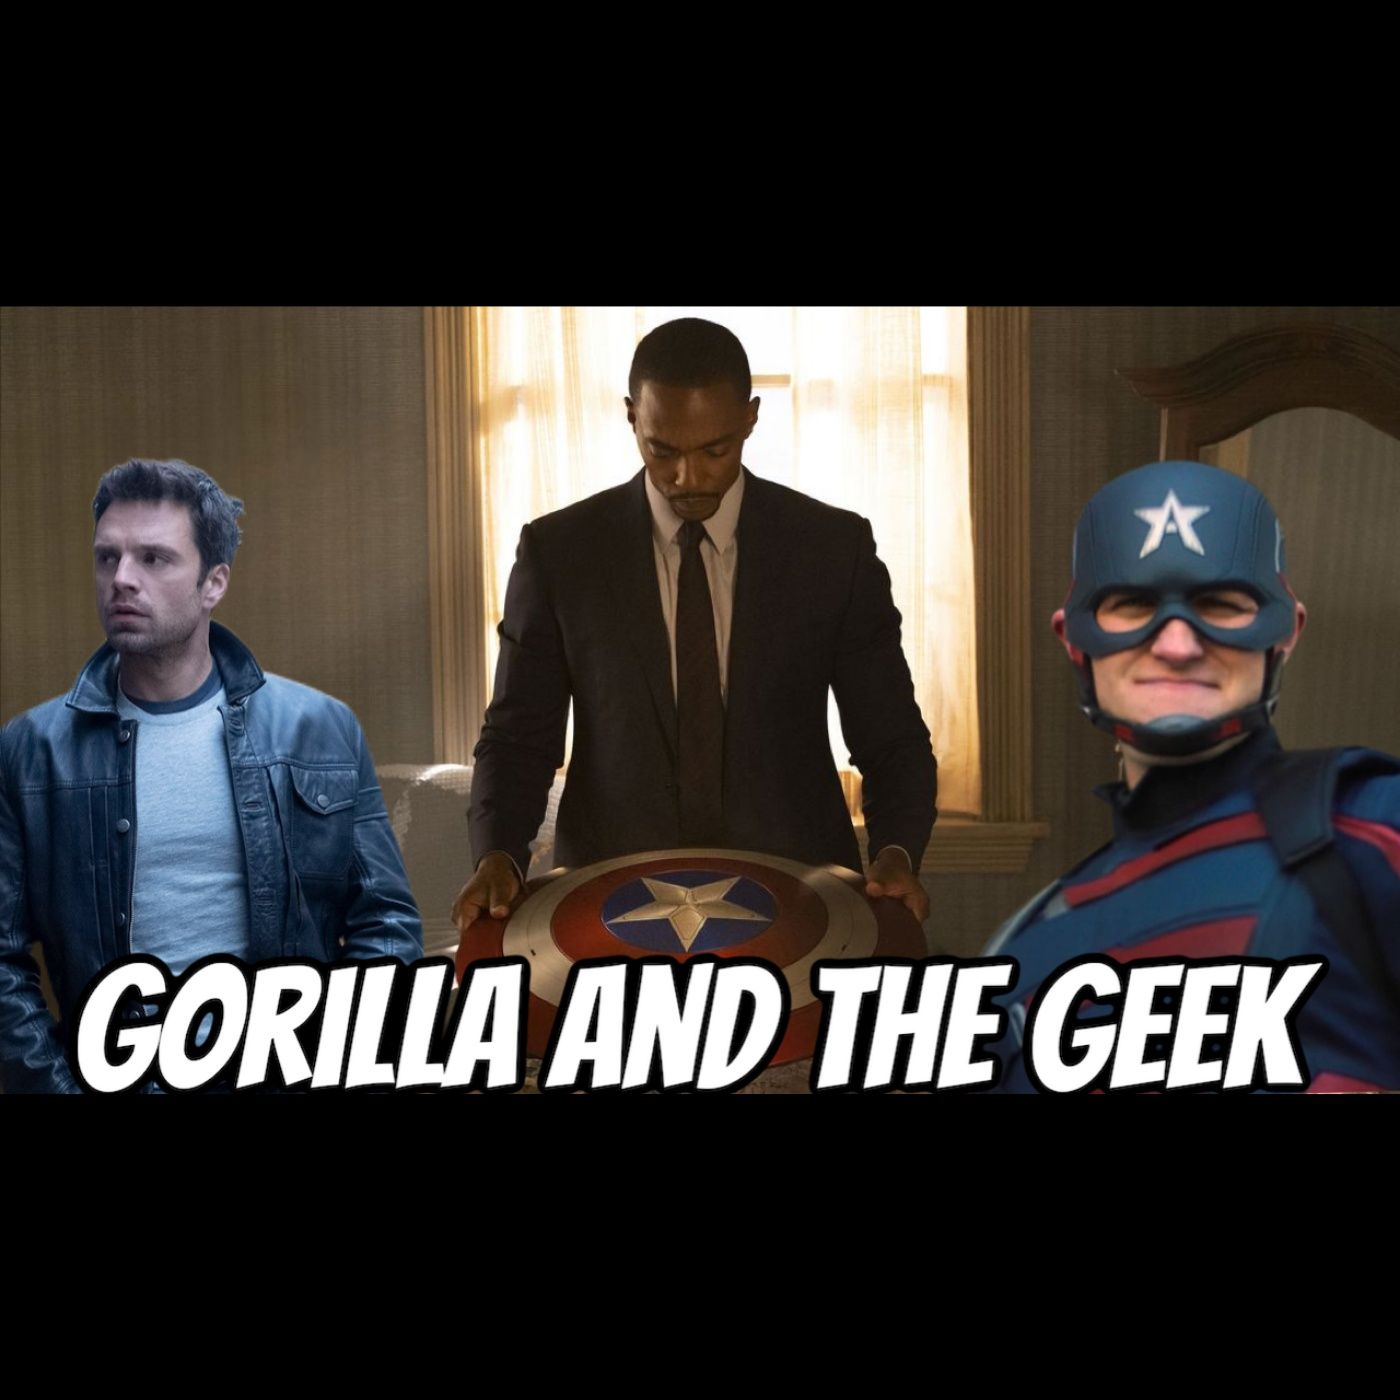 Falcon and The Winter Soldier Episode 1 Discussion - Gorilla and The Geek Episode 40